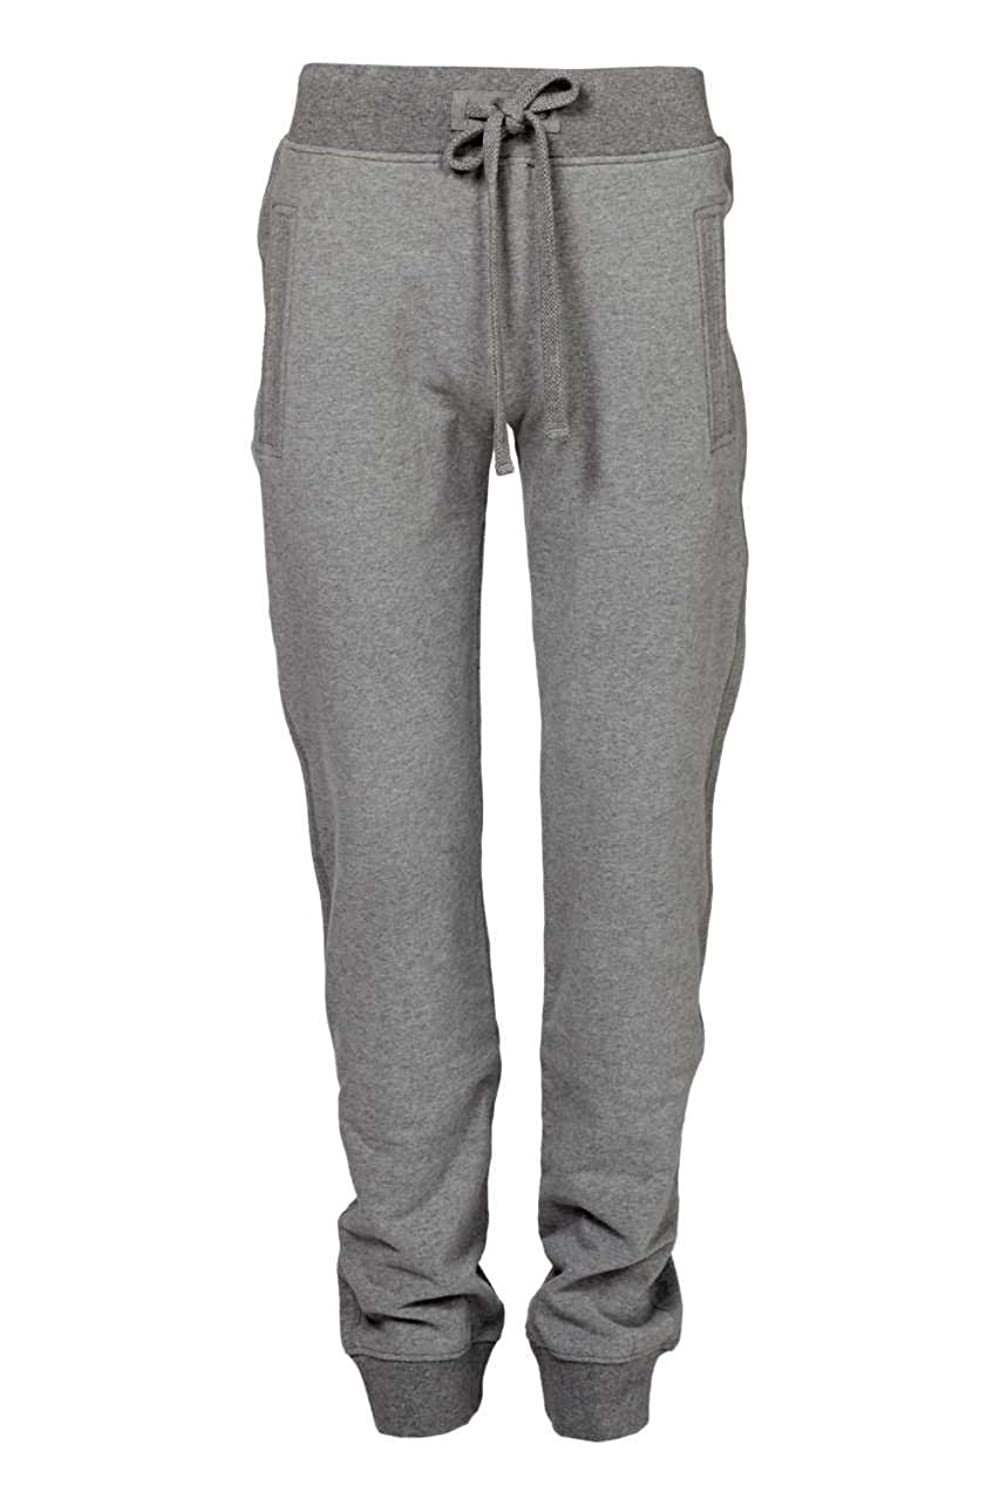 Aeronautica Militare Leisure Pants Federico, Color: Grey